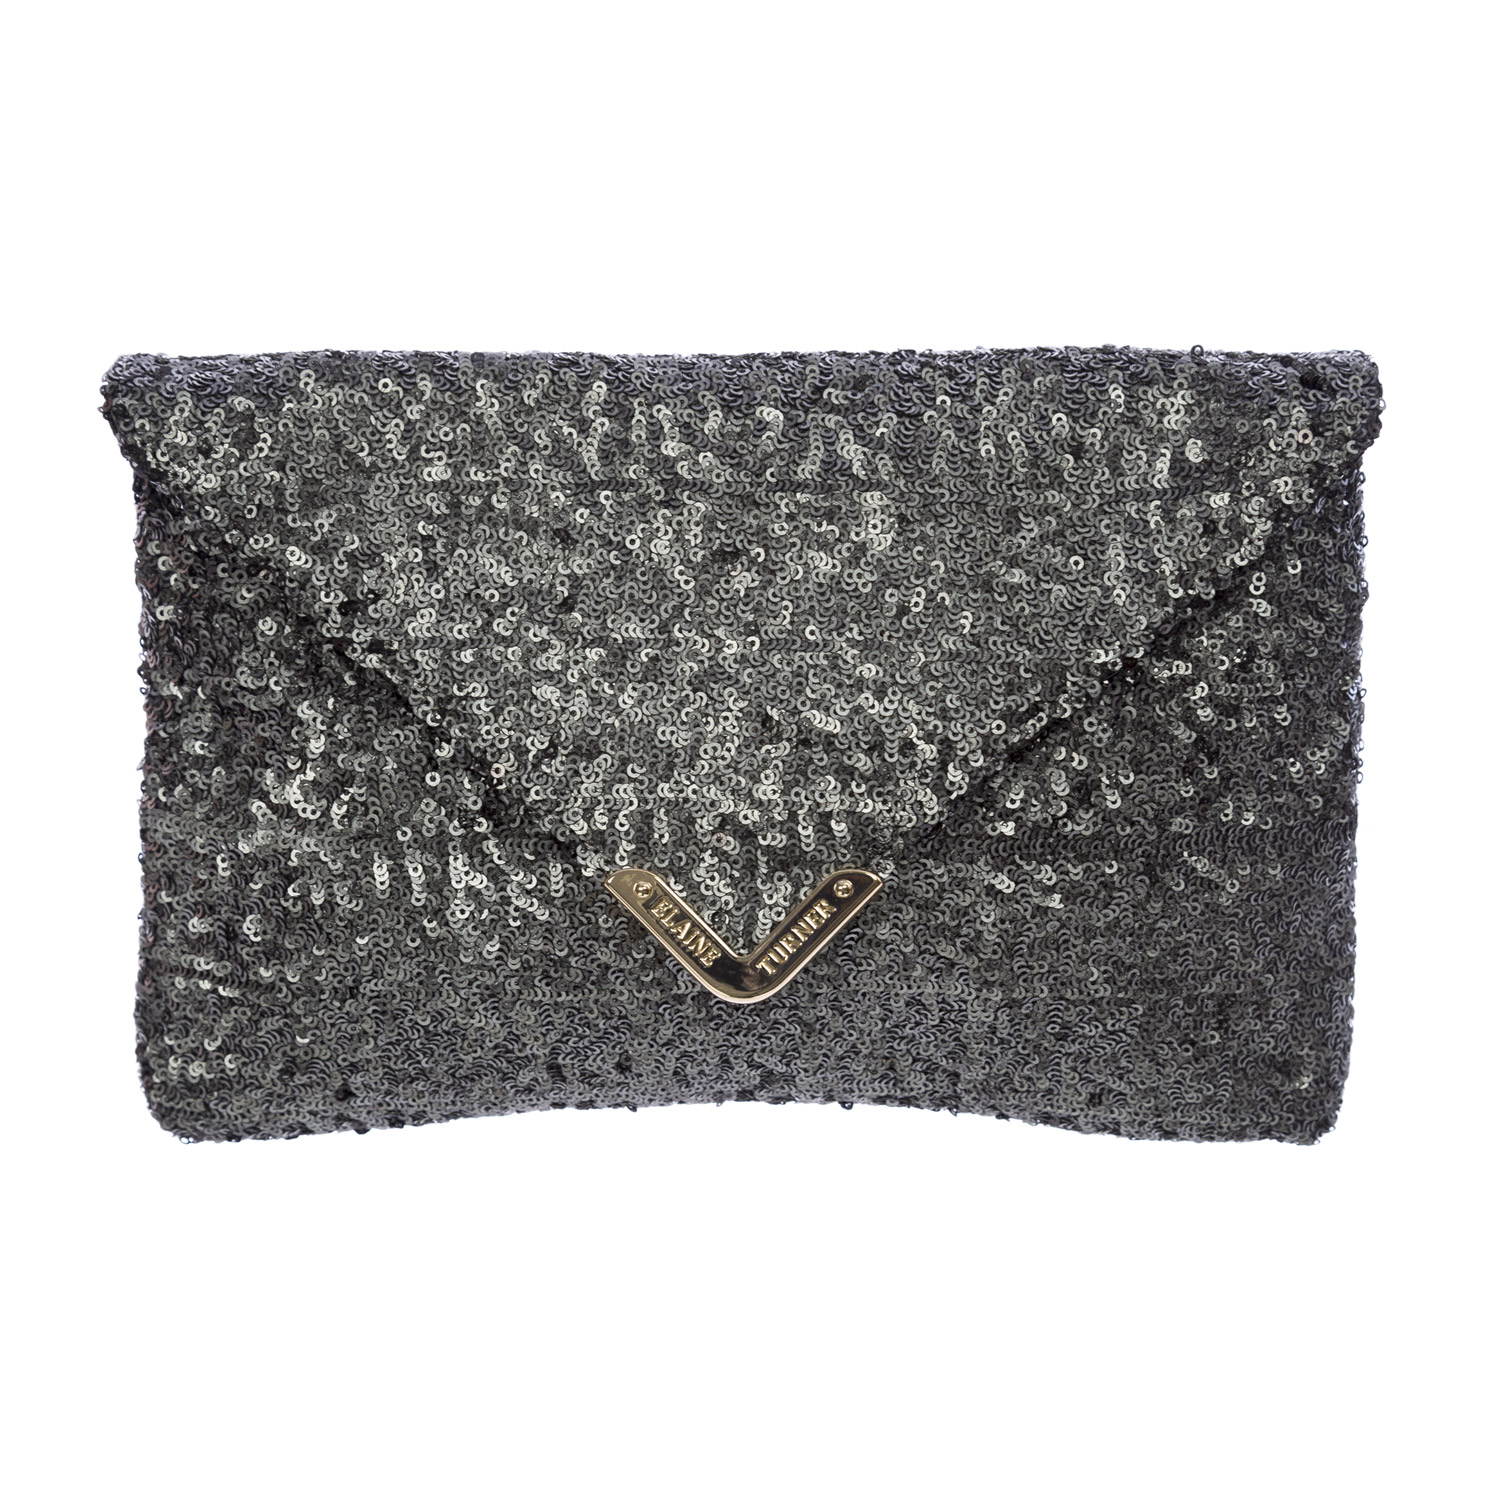 Elaine Turner Women's Sequined Bella Envelope Clutch Bag One Size Steel